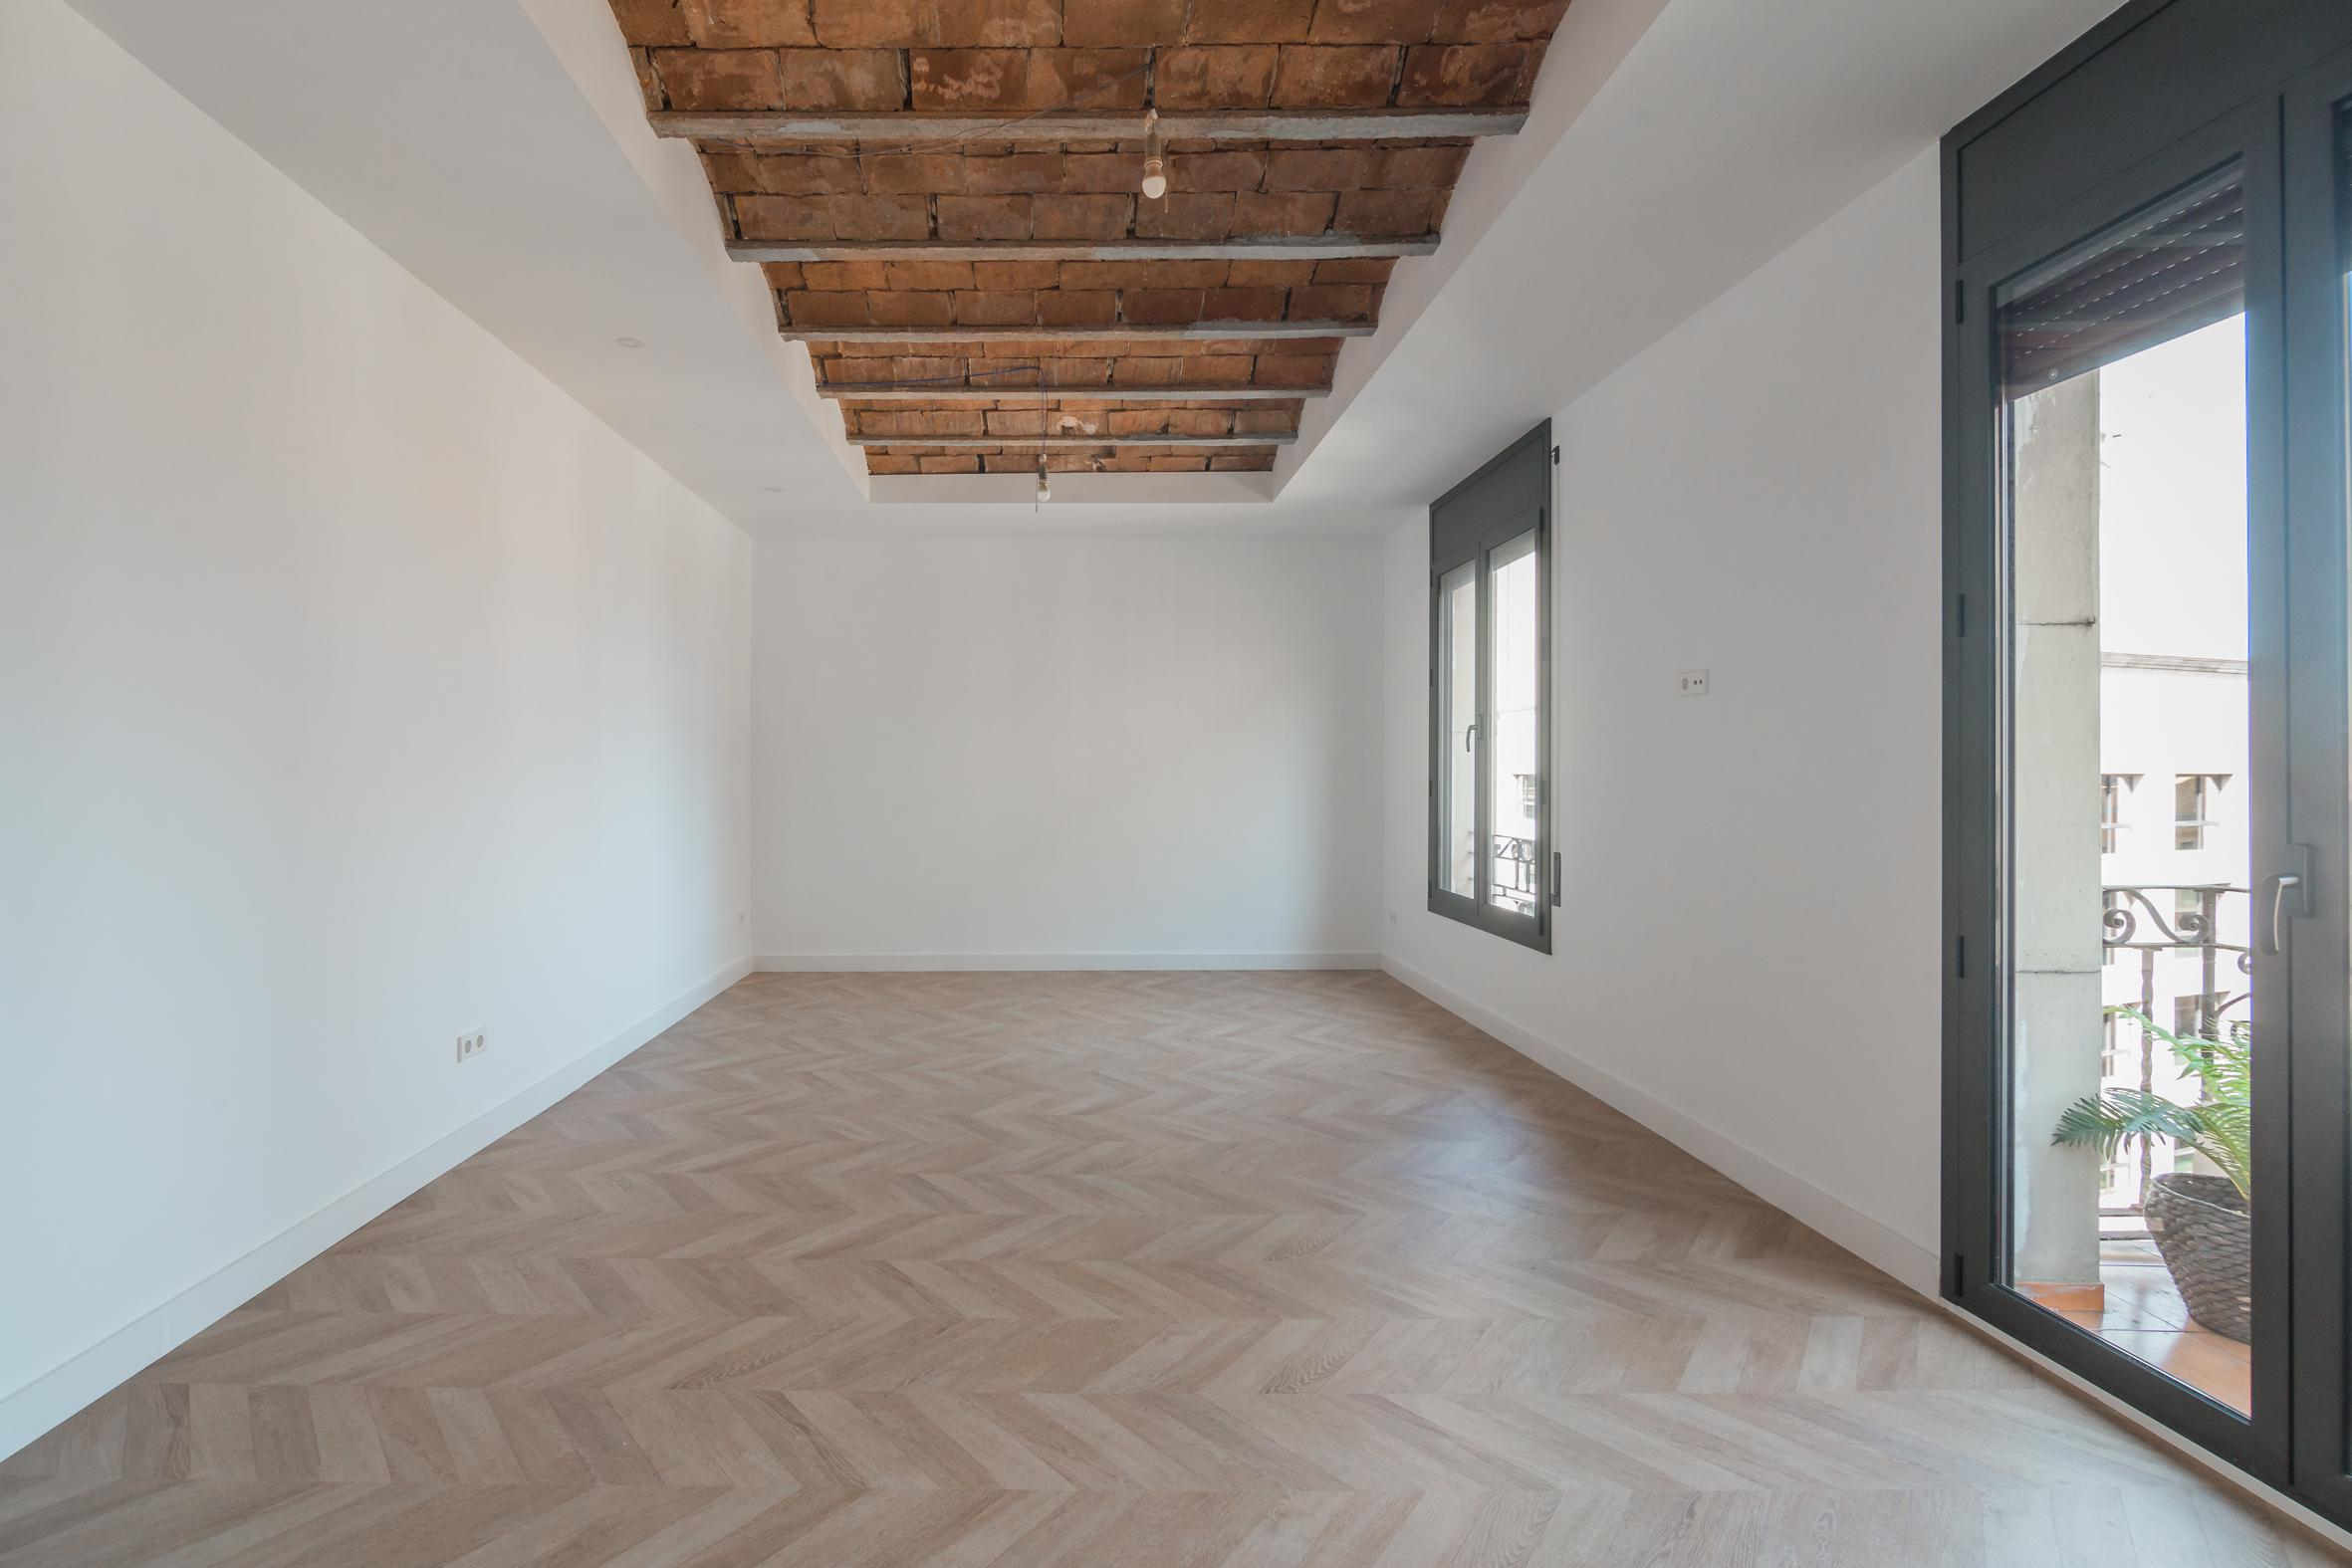 244010 Flat for sale in Ciutat Vella, Barri Gótic 1